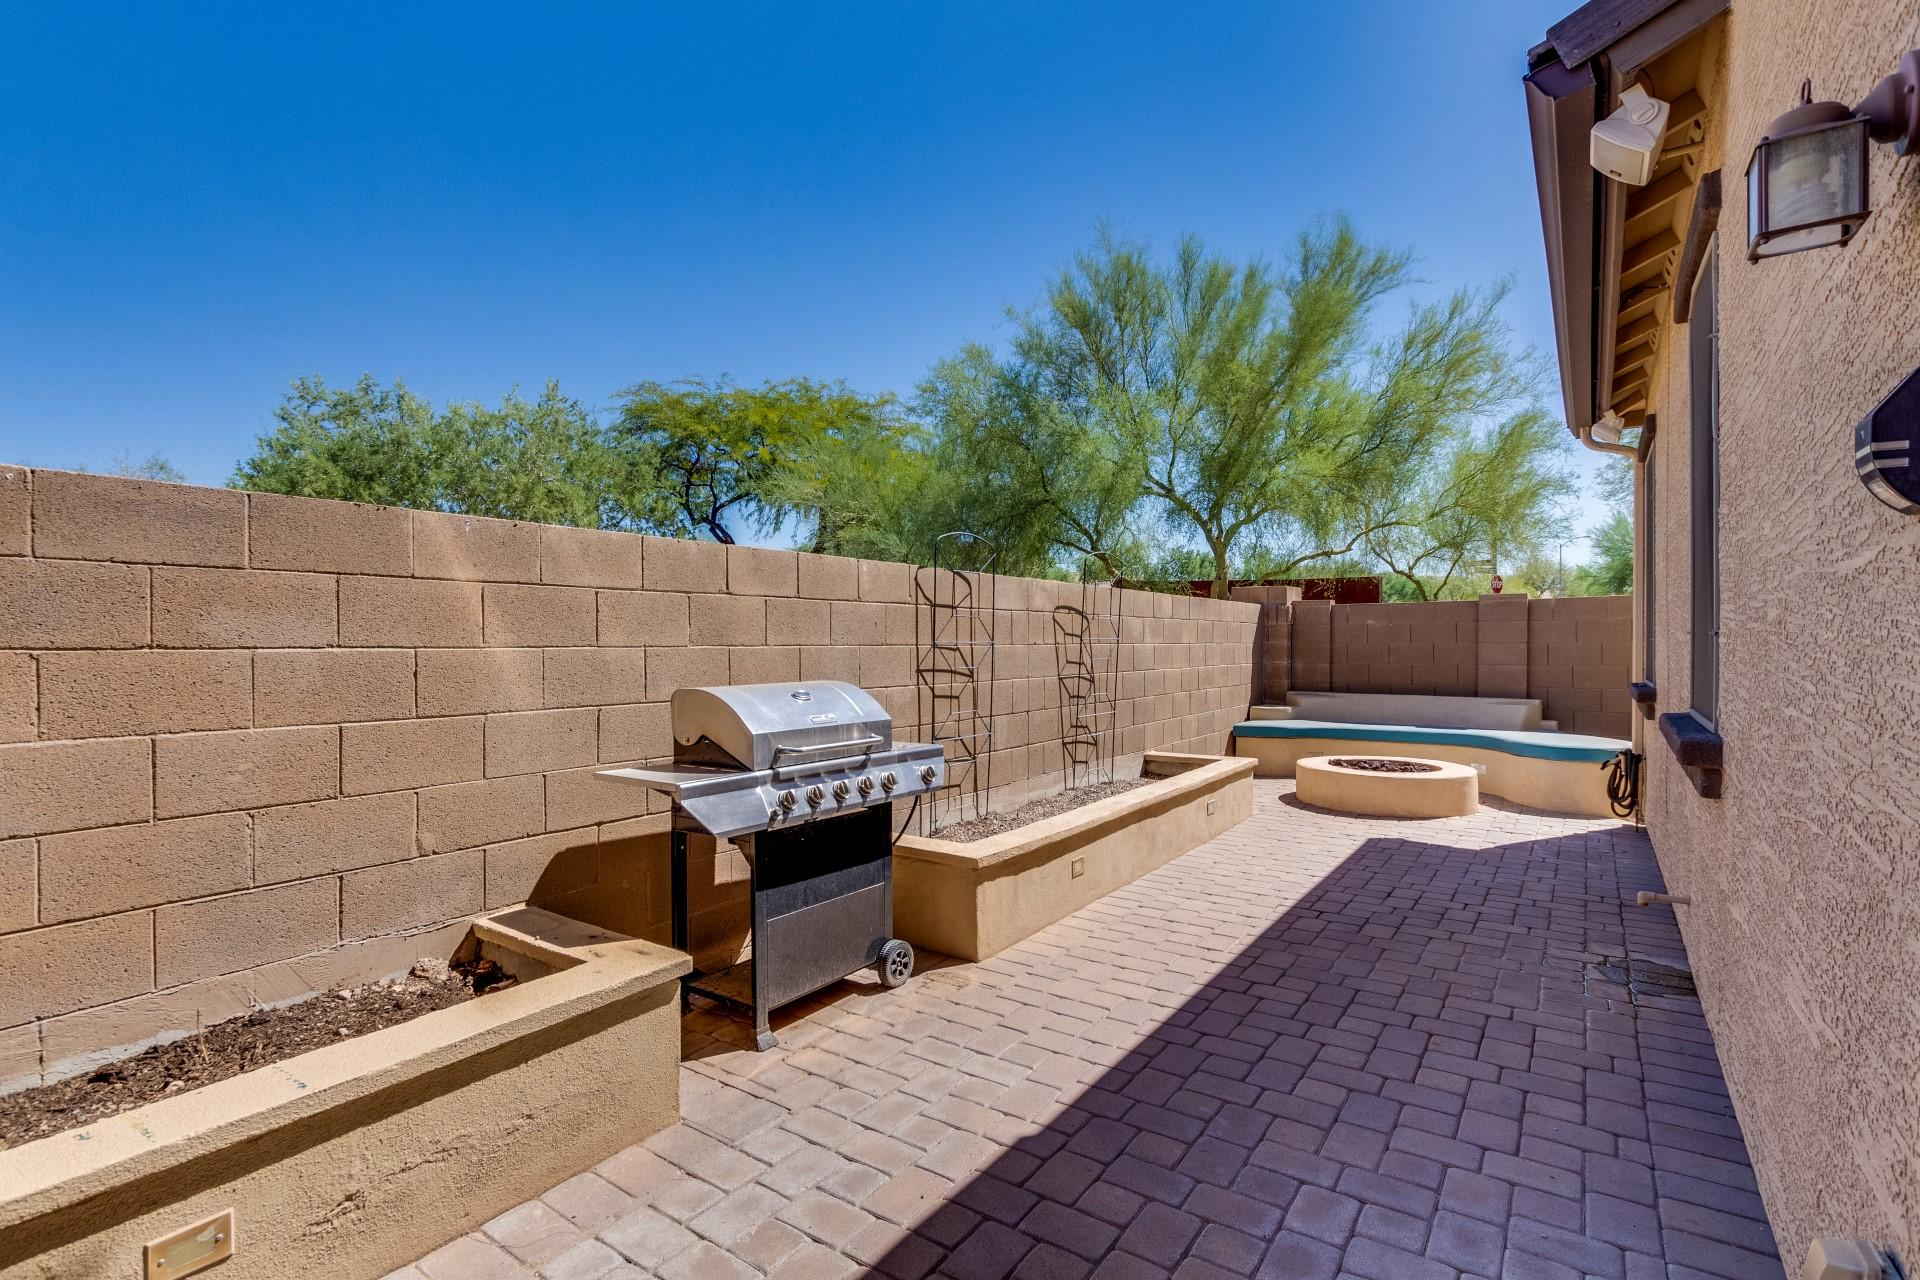 MLS 5821238 17855 N 114TH Drive, Surprise, AZ 85378 Surprise AZ Canyon Ridge West